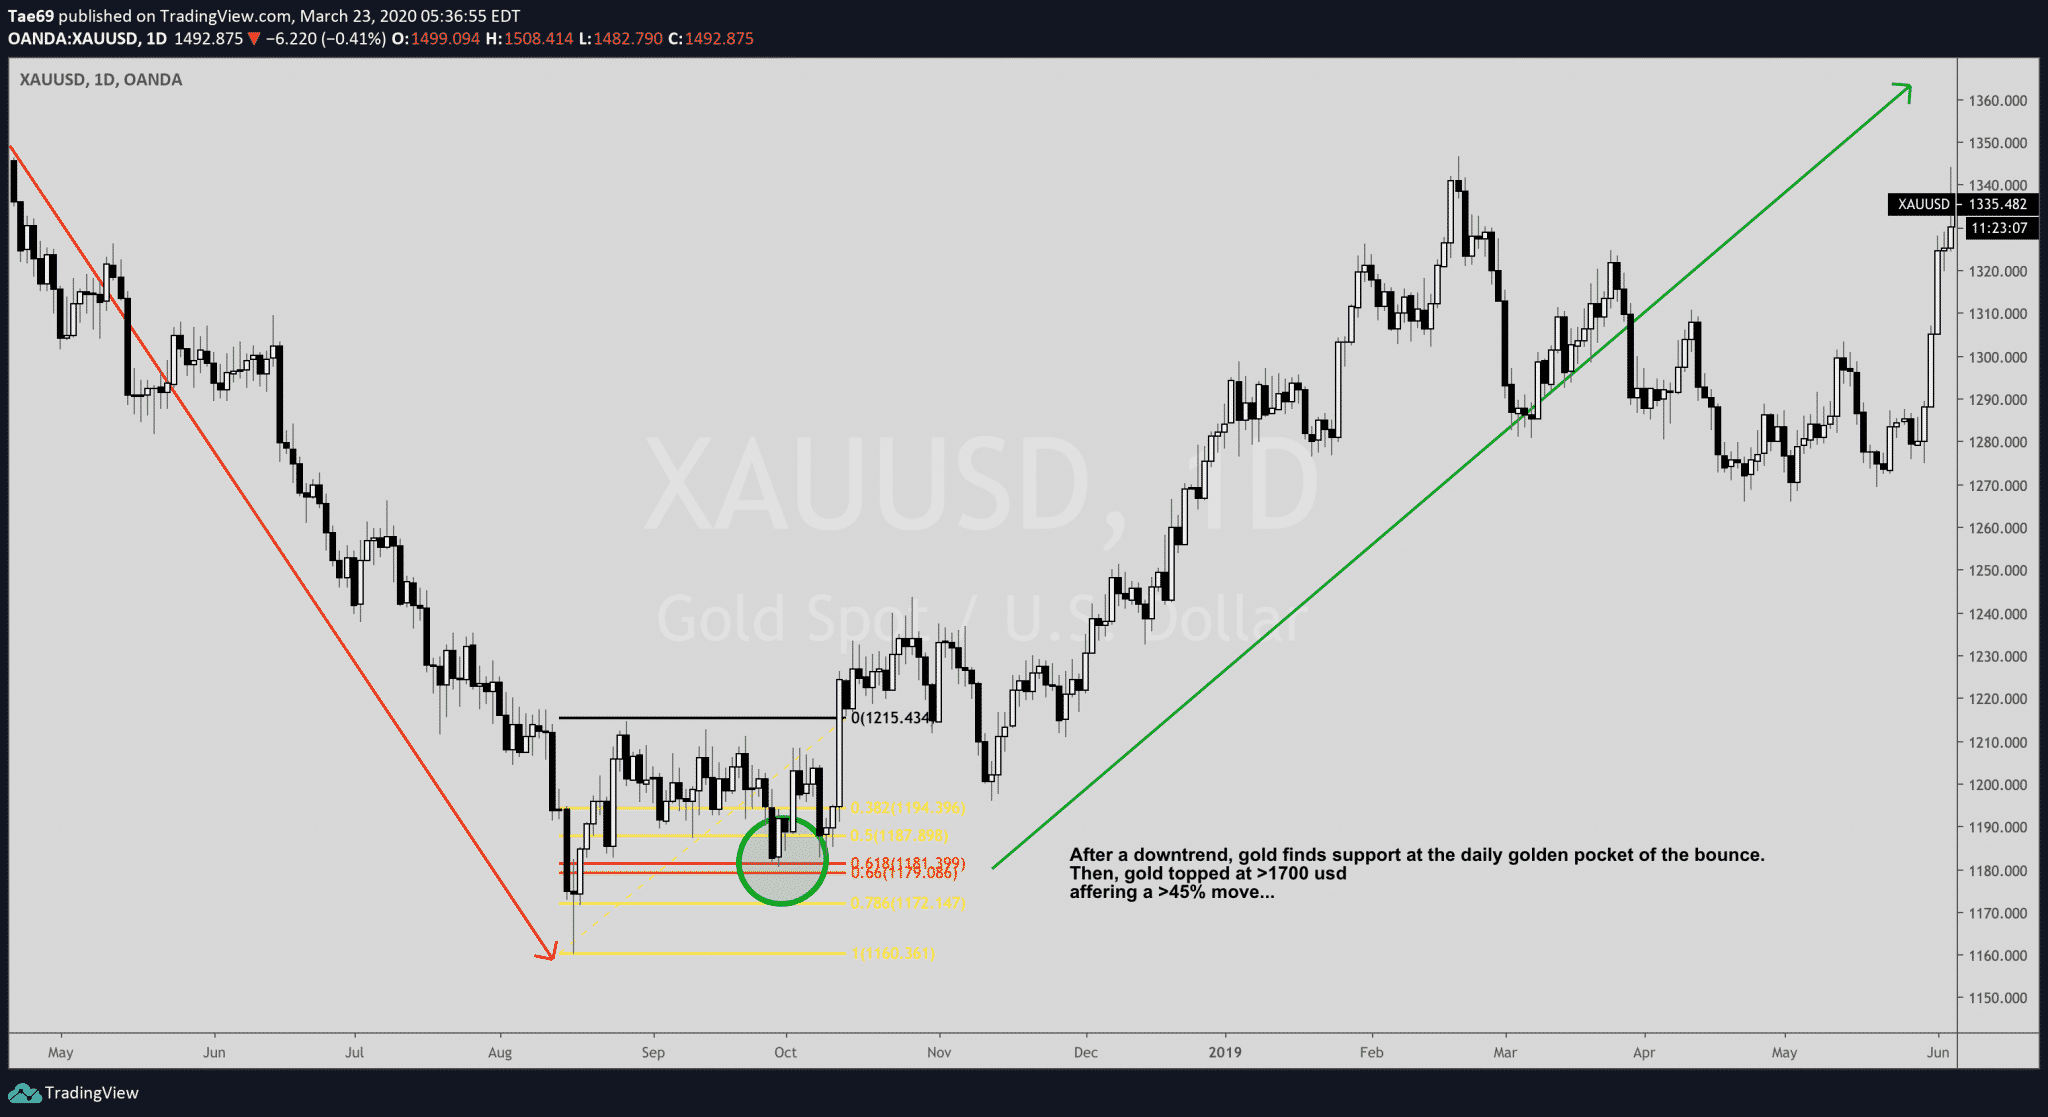 Trade pullbacks to the Golden Pocket daily on xauusd gold chart to initiate the 2018 to 2020 uptrend